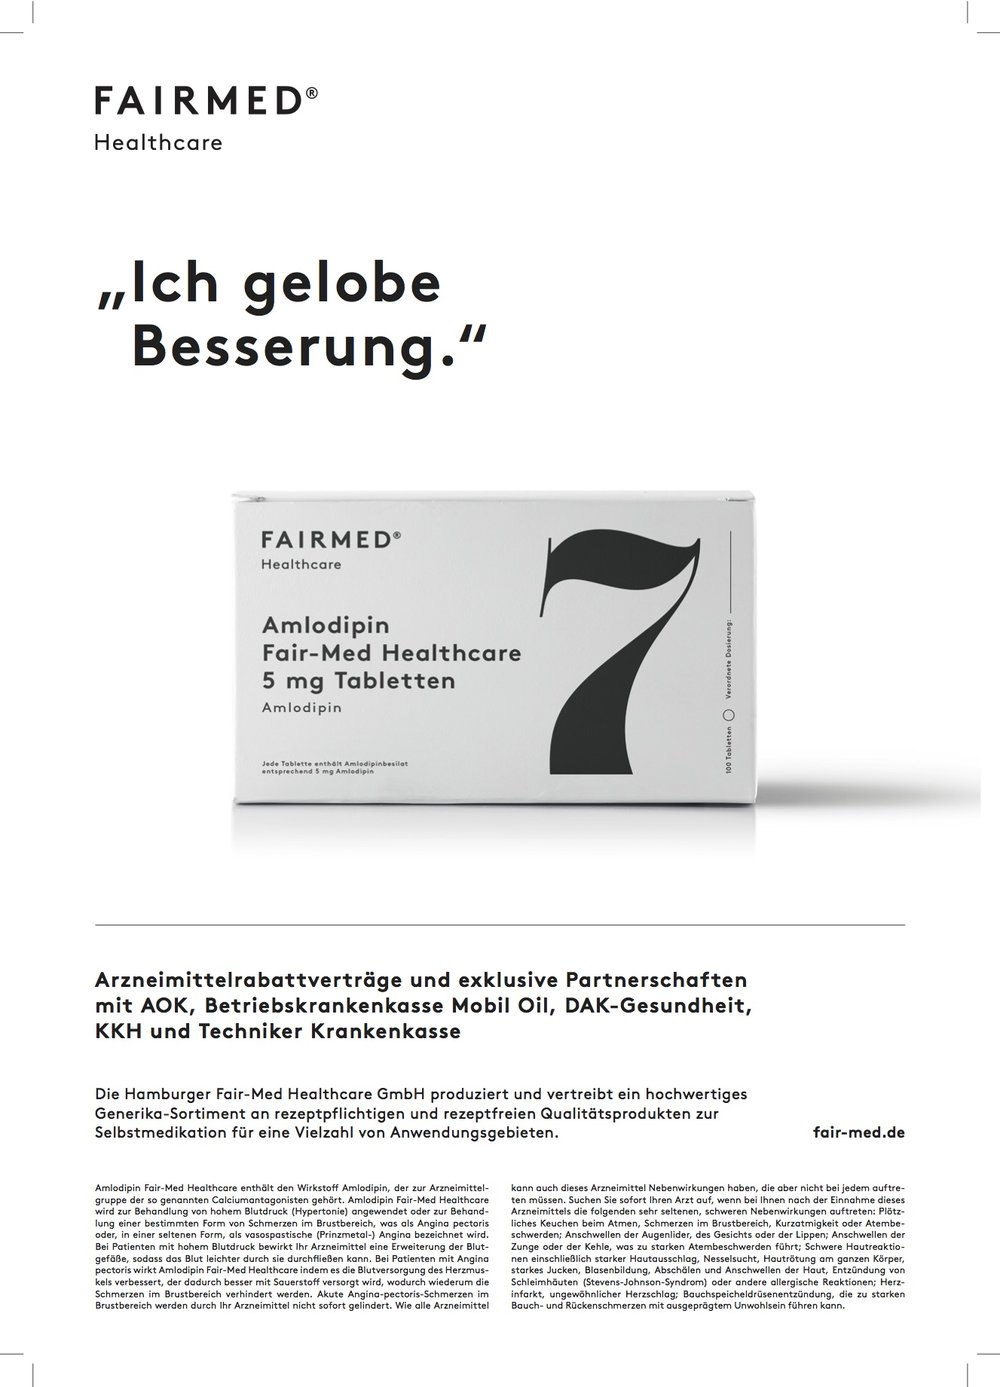 Fair-Med Healthcare Germany Print / PR